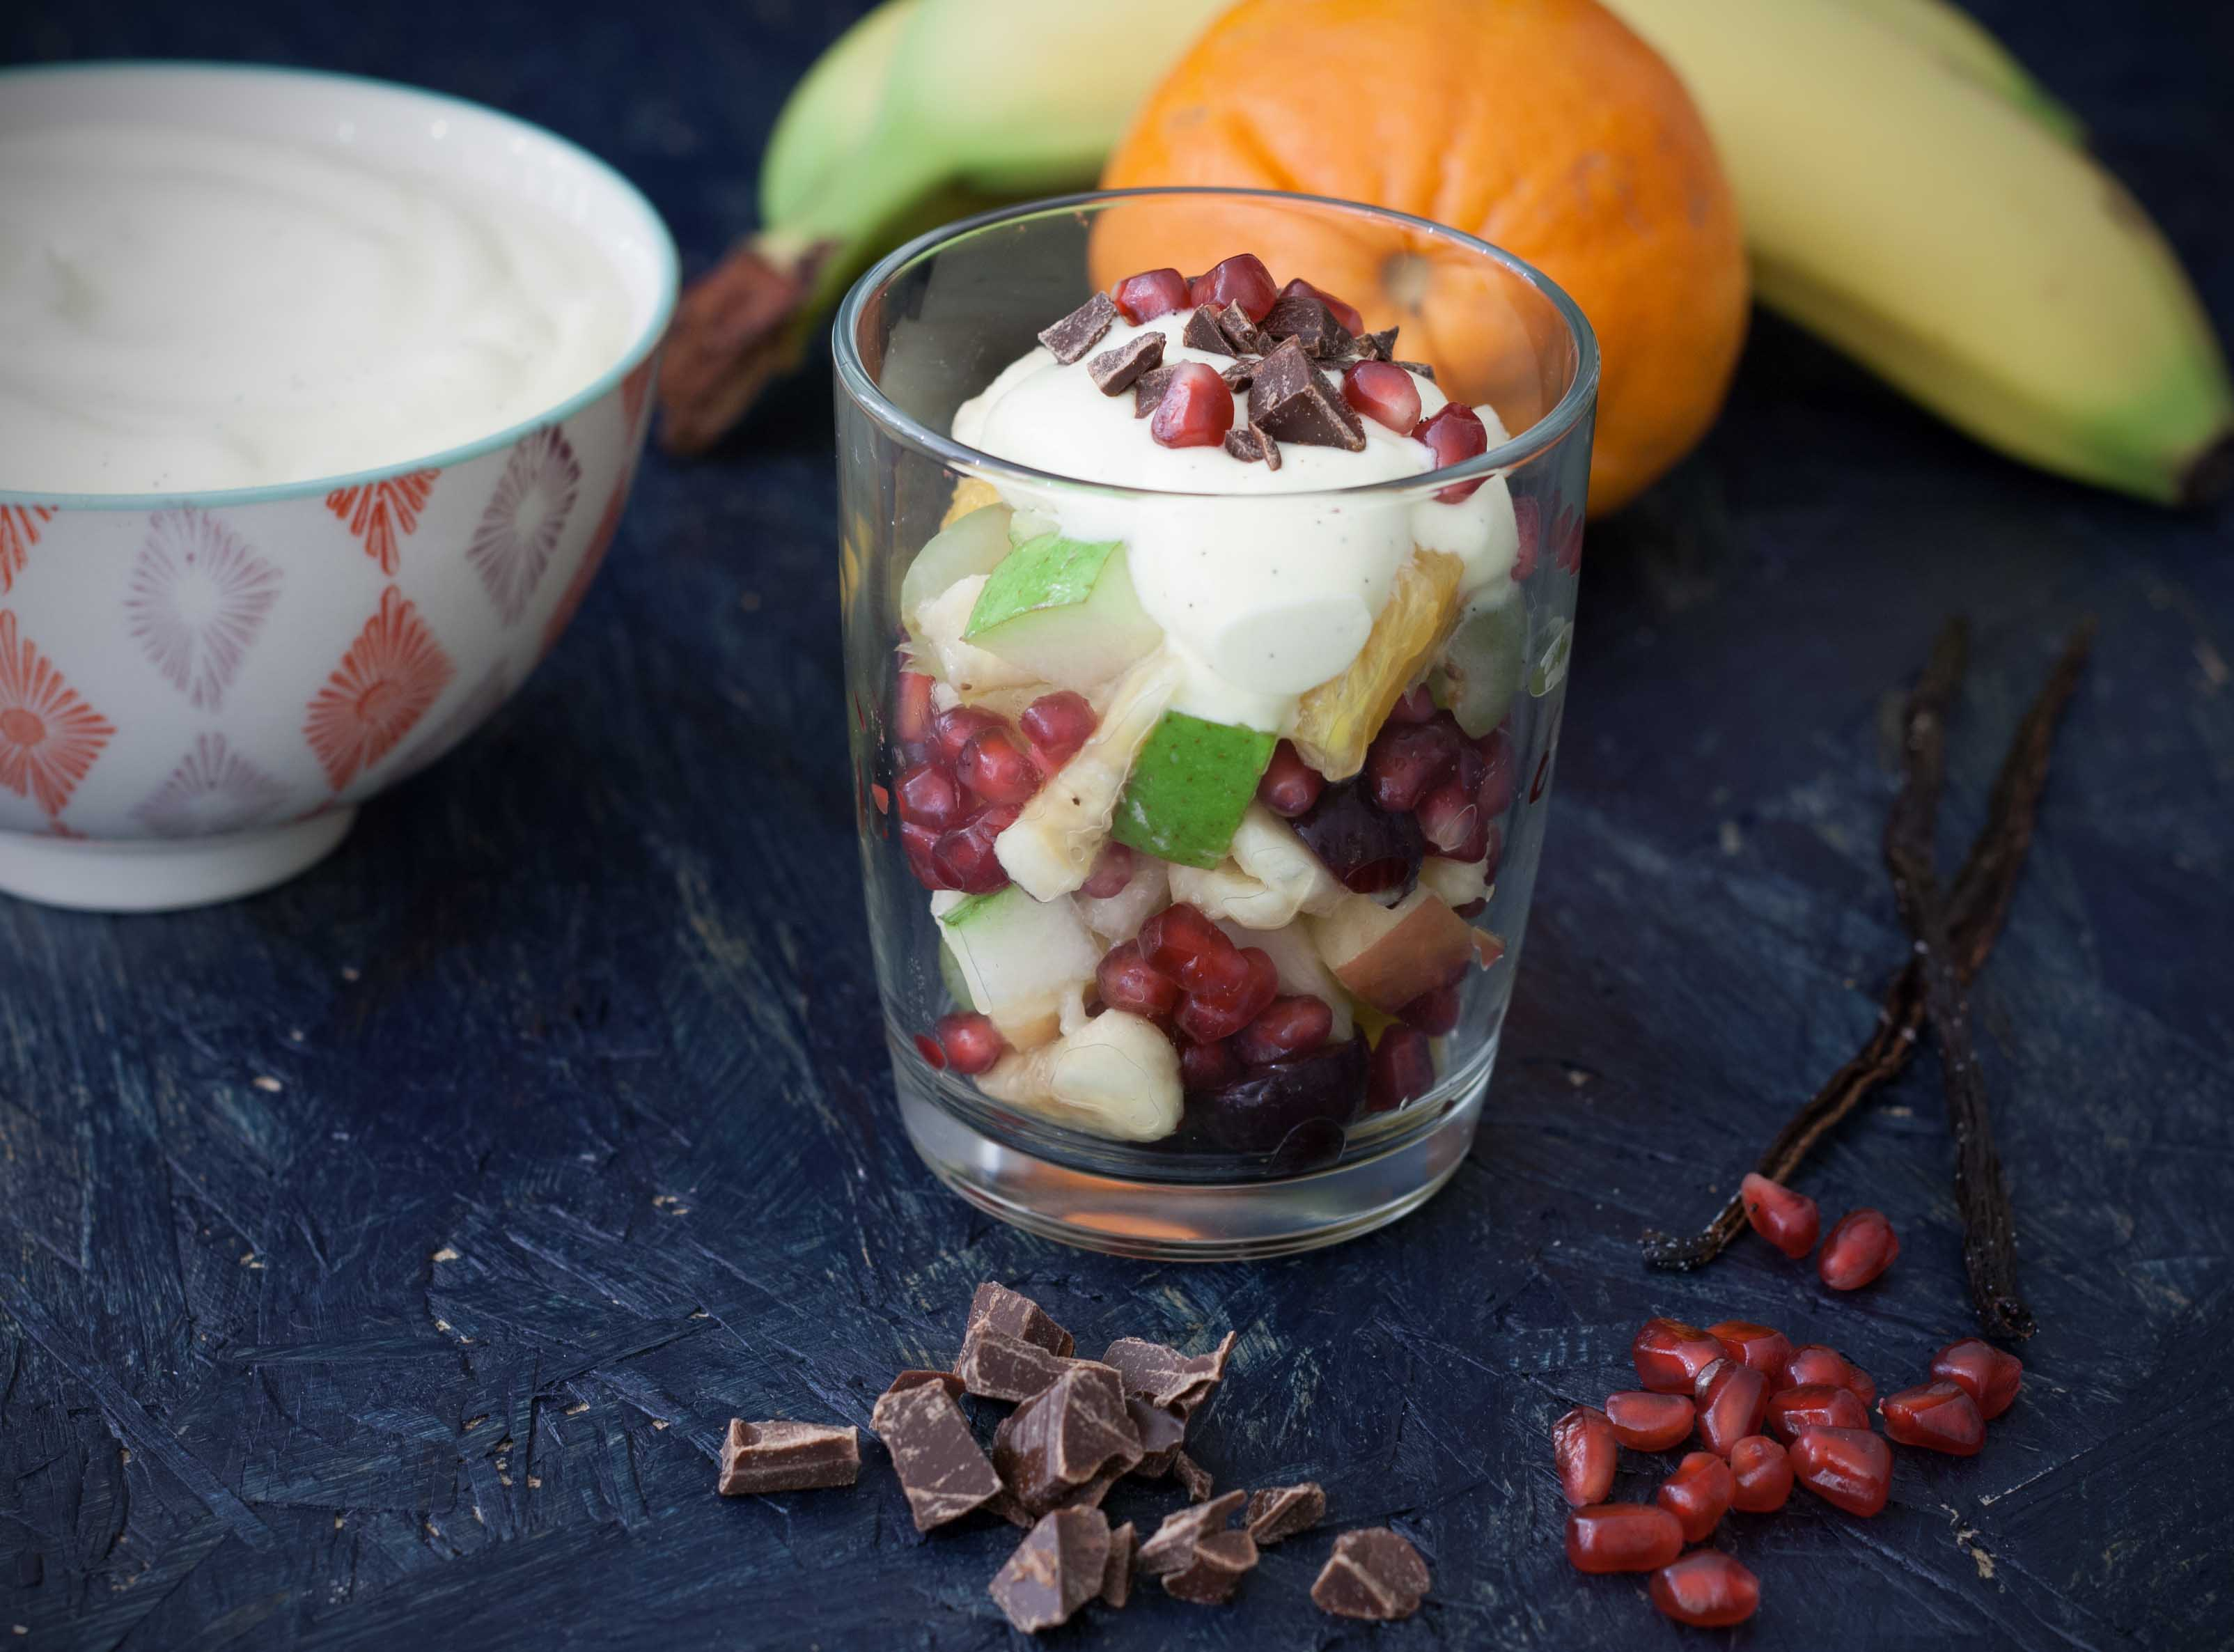 Recipe for Homemade Fruit Salad with Vanilla Cream and Chocolate